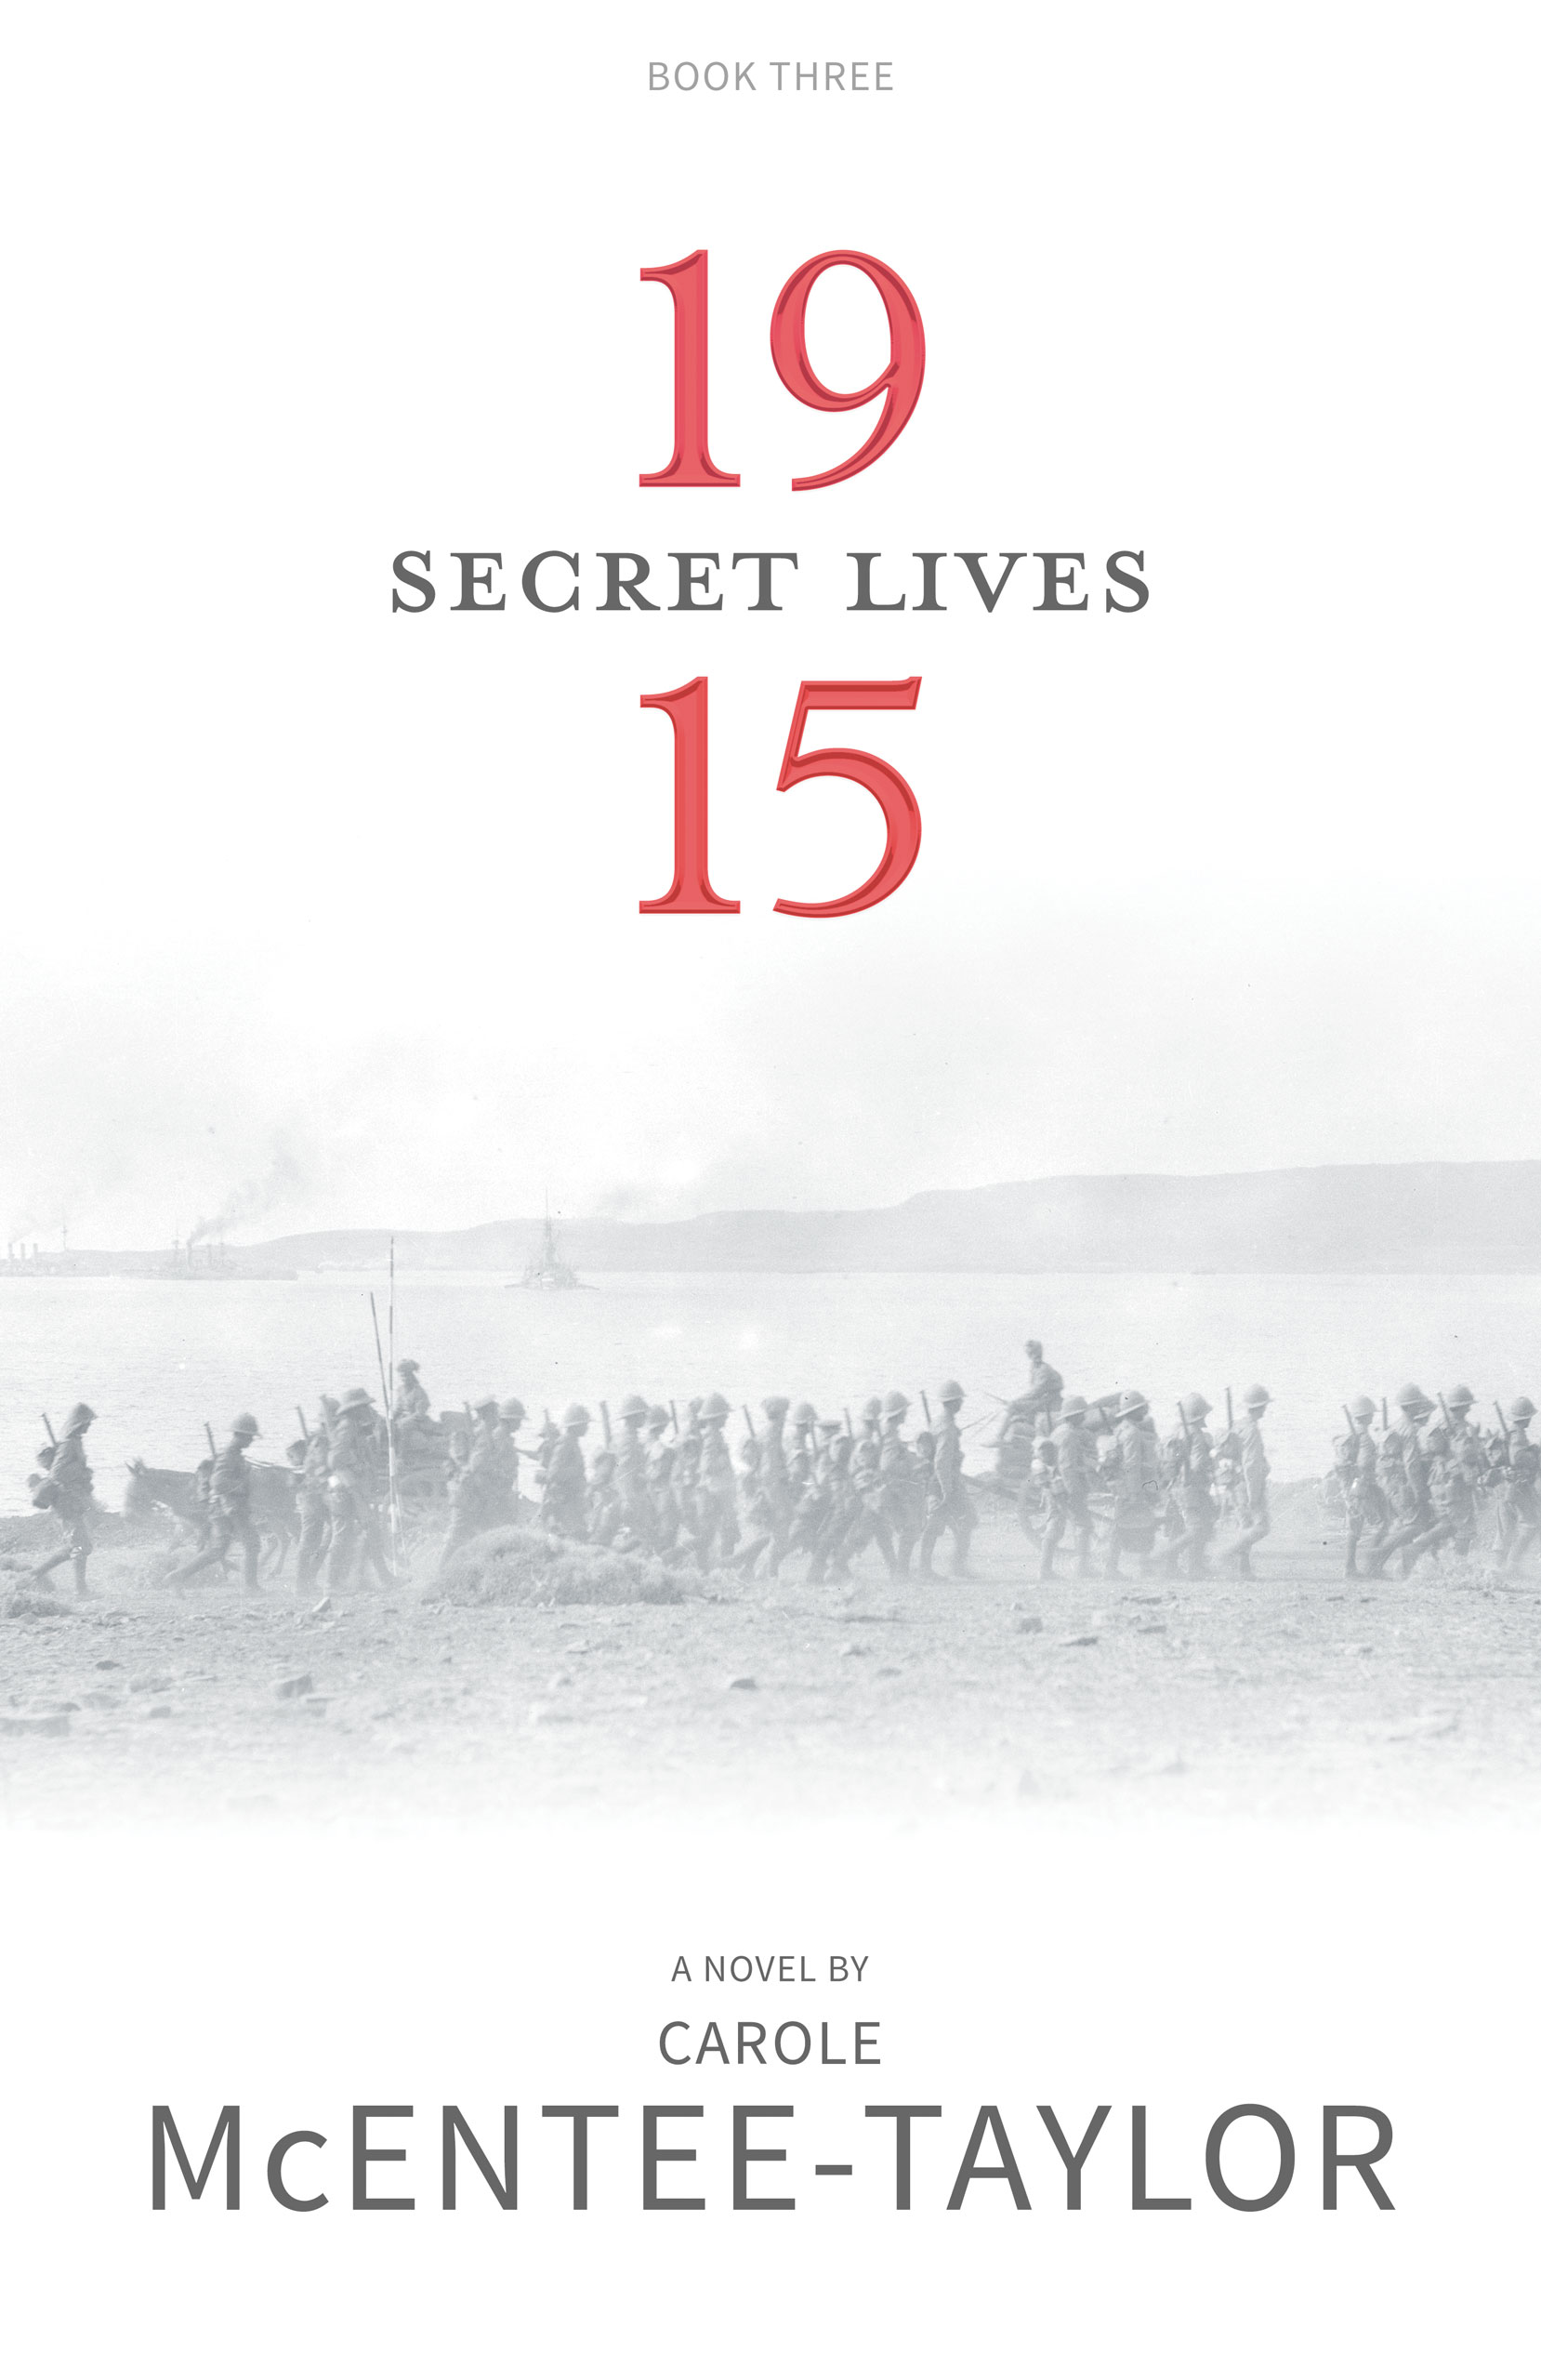 Secret Lives - 1915 Book Three by Carole McEntee-Taylor cover image.